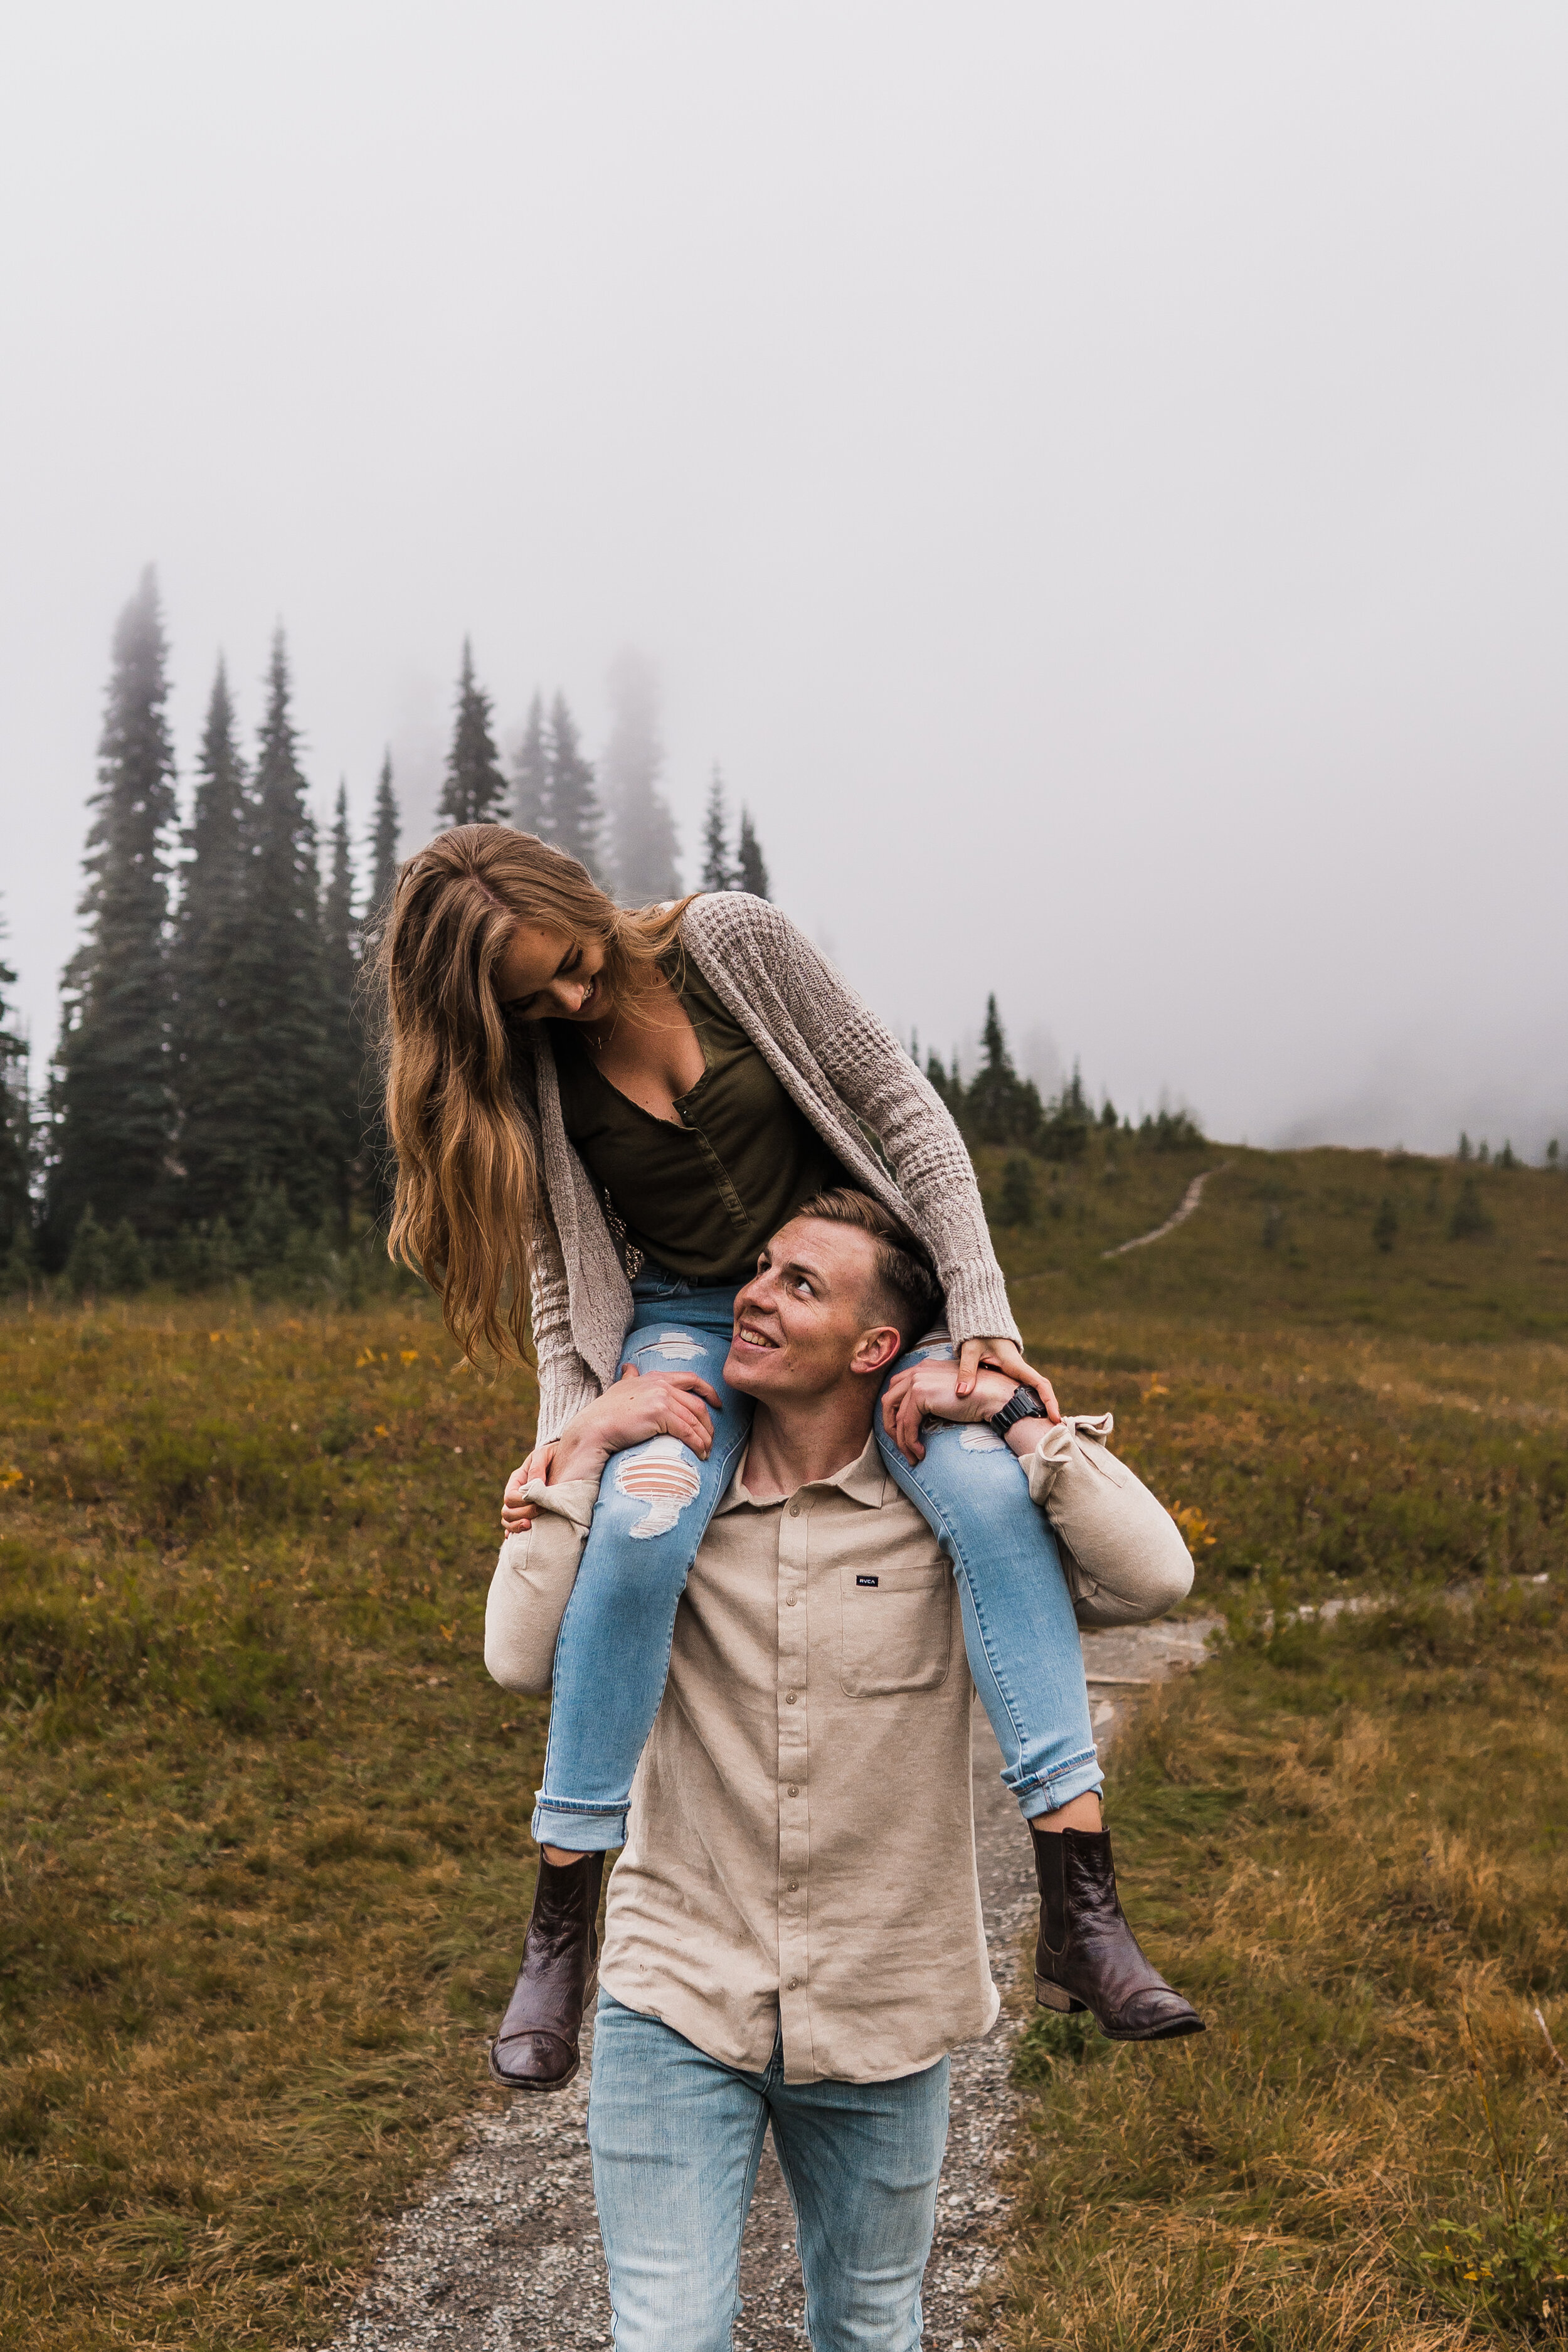 Mount Rainier Fall Engagement Session | Between the Pine Adventure Elopement Photography